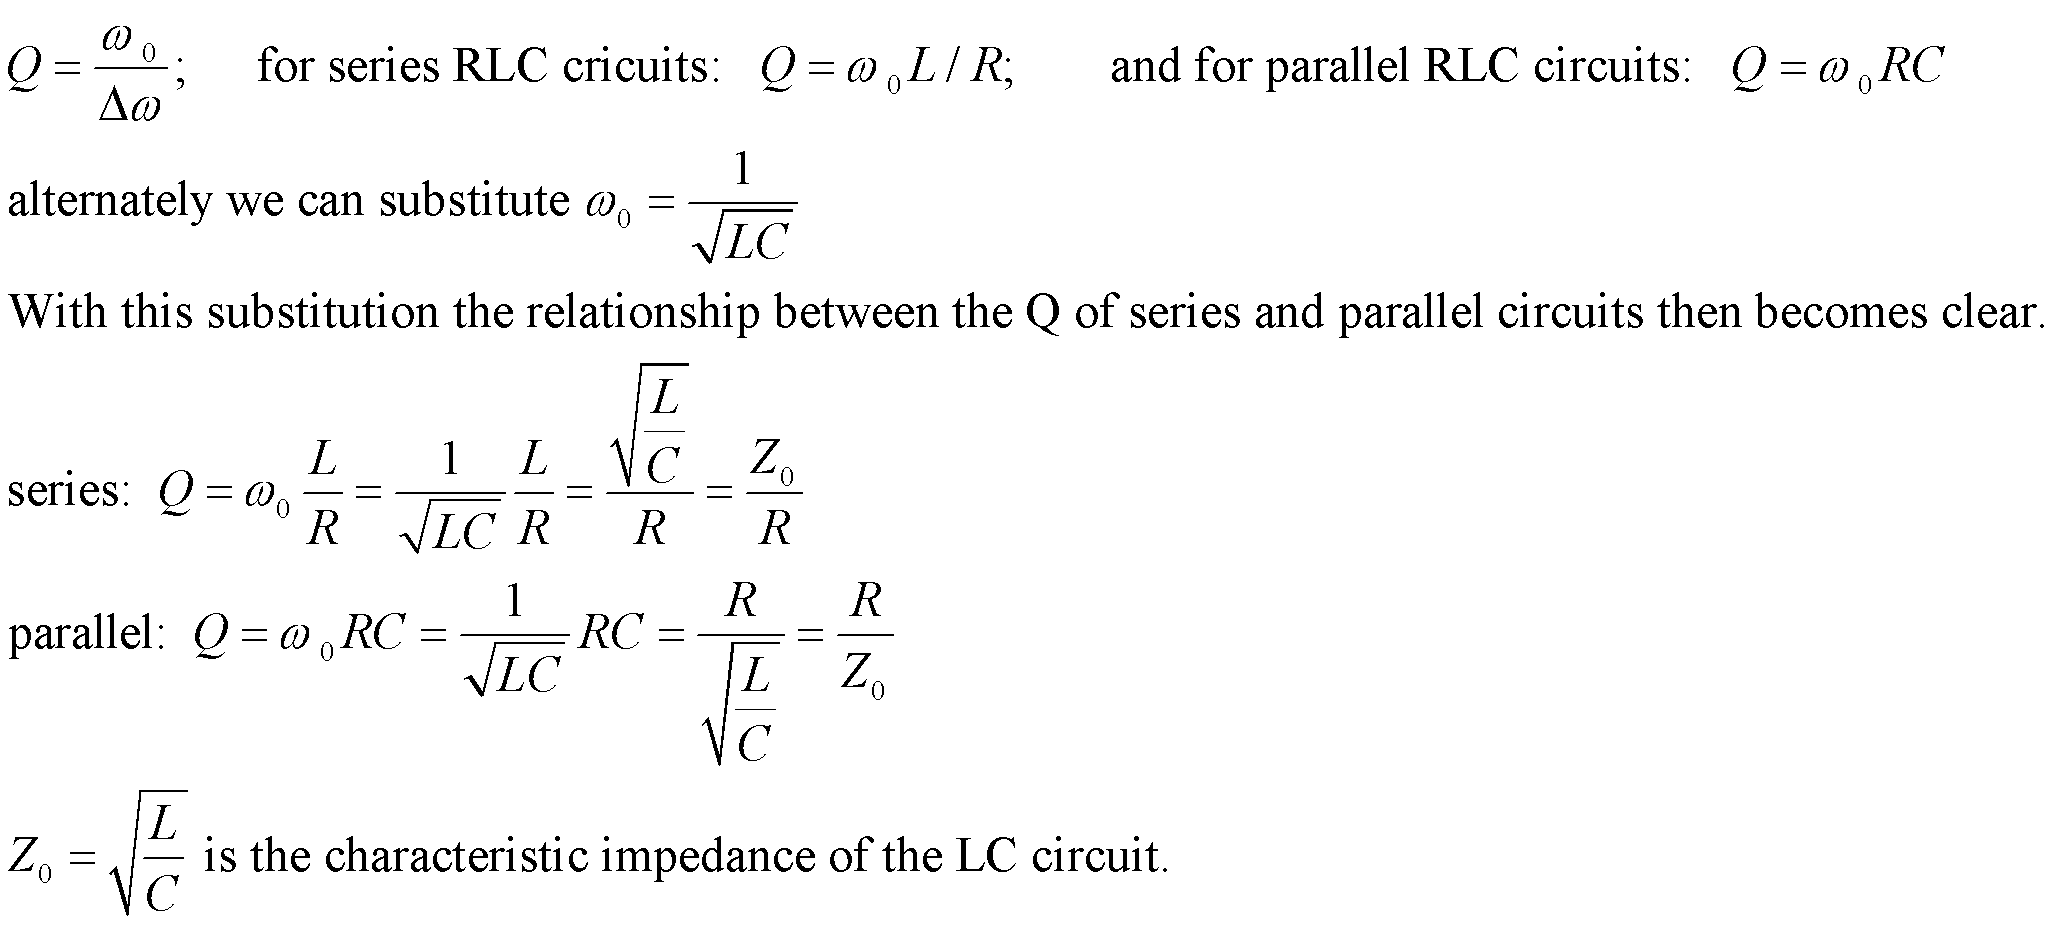 La Bumm Phys2303 Ac Steady State Circuits Impedance Rc Rl By Simplifying The Circuit With Equivalent We Get You Will Also Need Use Context Of Equation To Distinguish Between And F Because Formally They Both Have Units